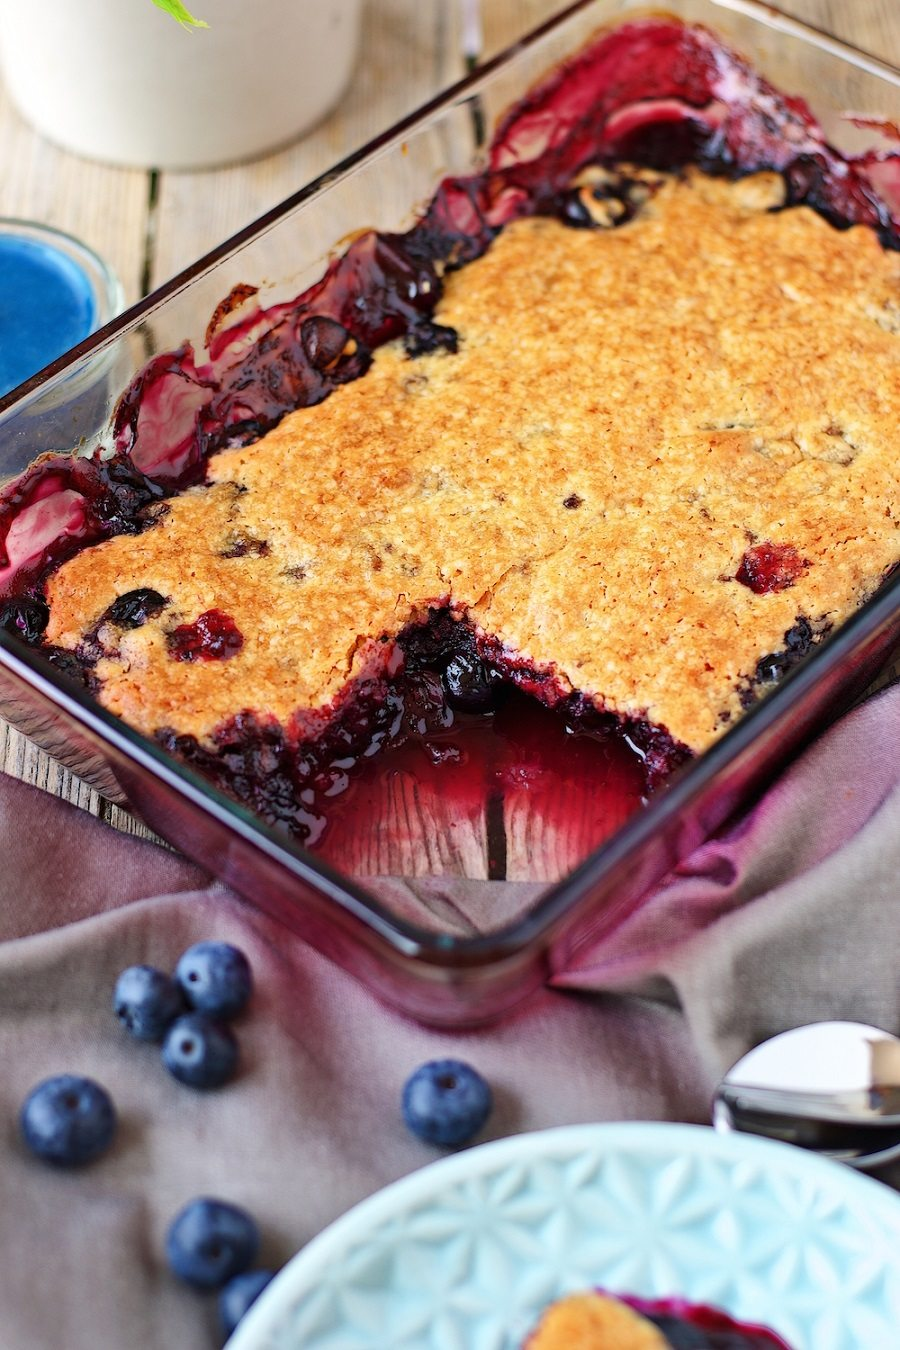 Closeup on the Easy Blueberry Cobbler in the casserole dish, showing the juicy fruit mix and crunchy top.